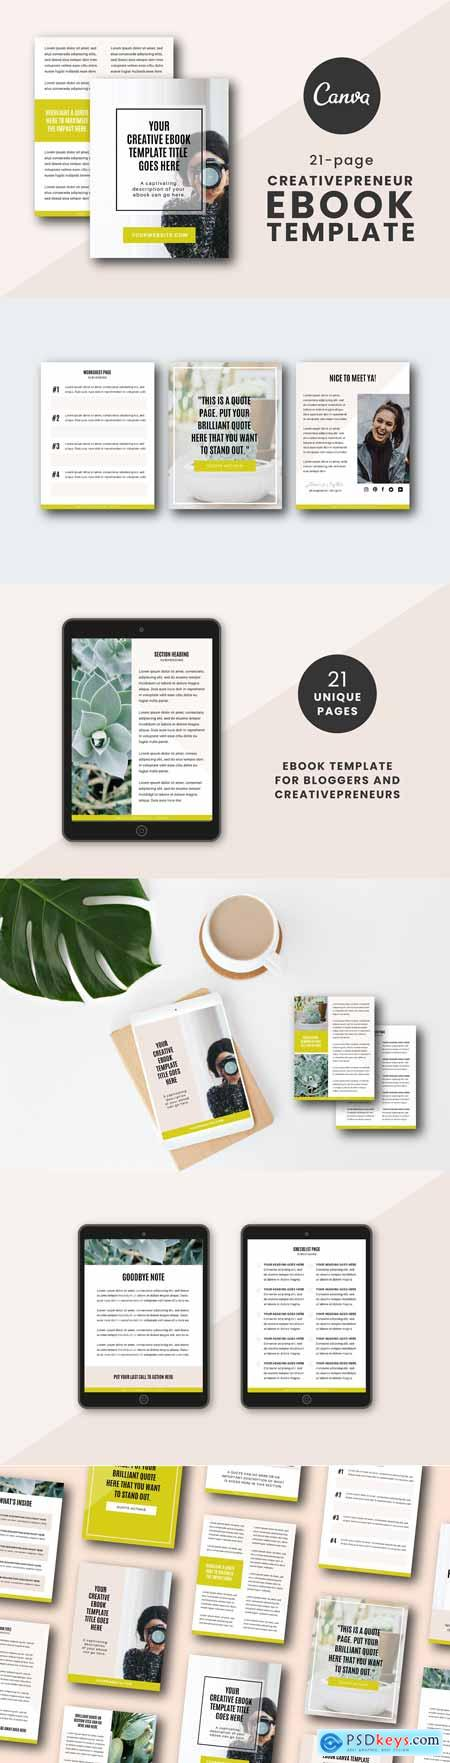 Creativepreneur eBook Canva Template 3412765